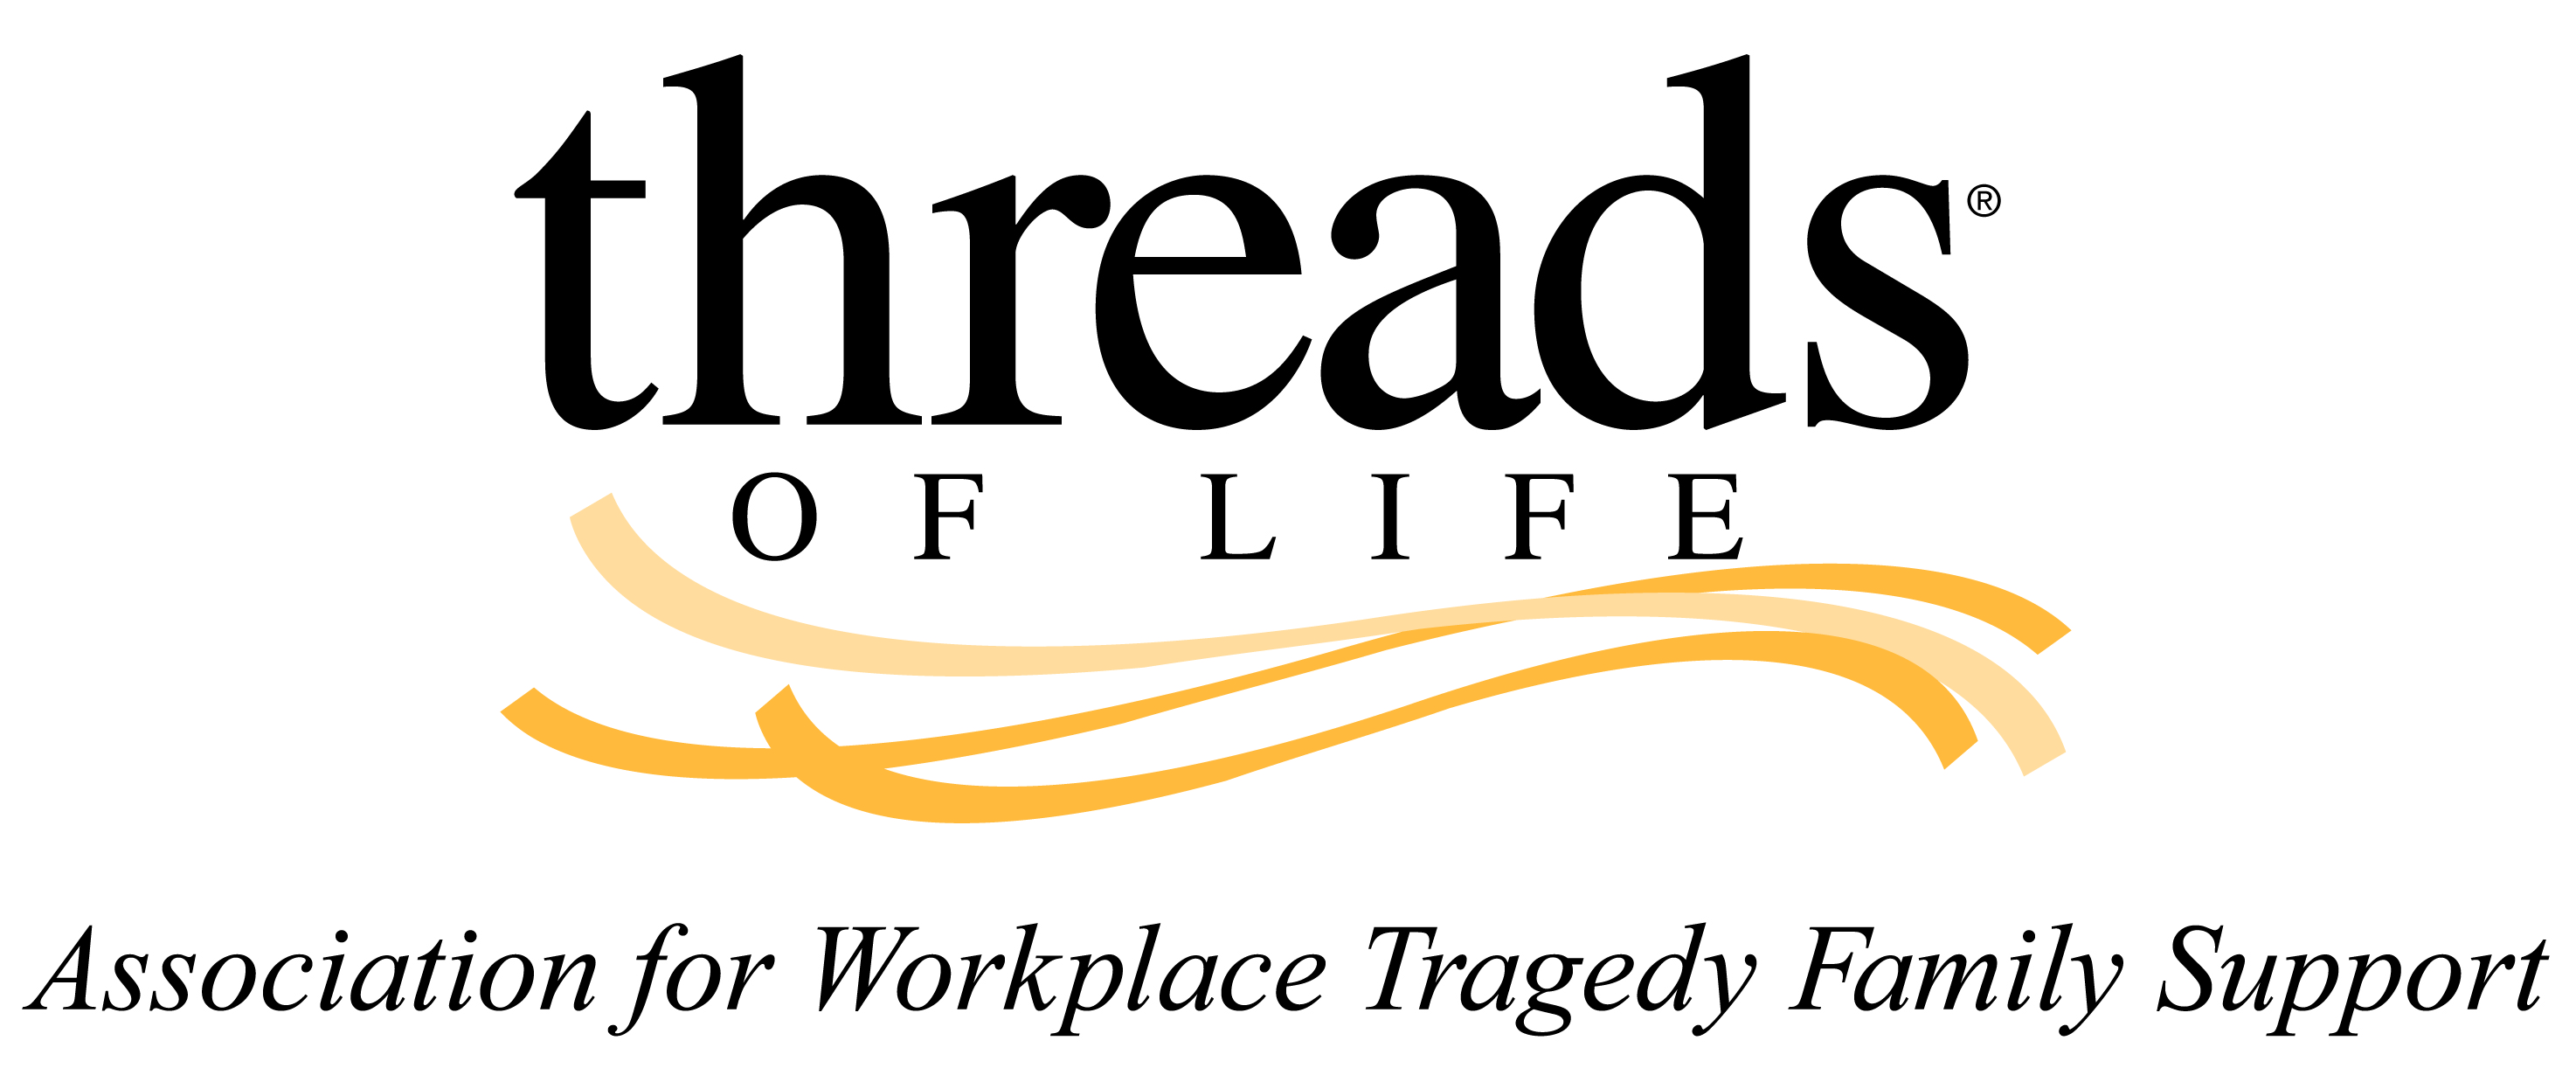 Association for Workplace Tragedy Family Support